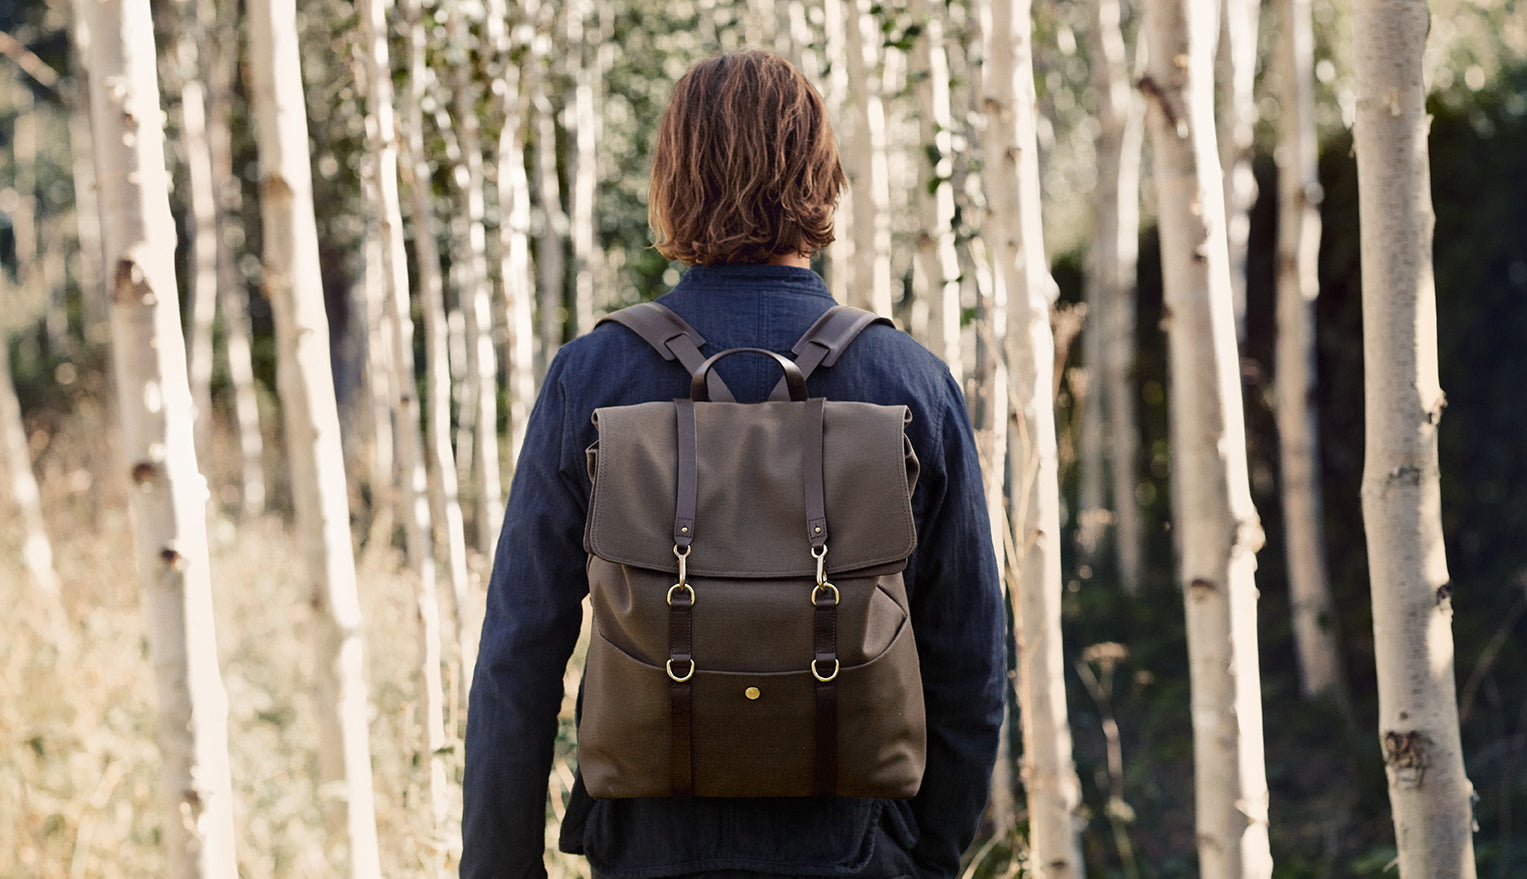 M/S Backpack - ARMY, KHAKI & RIFLE GREEN/BLACK